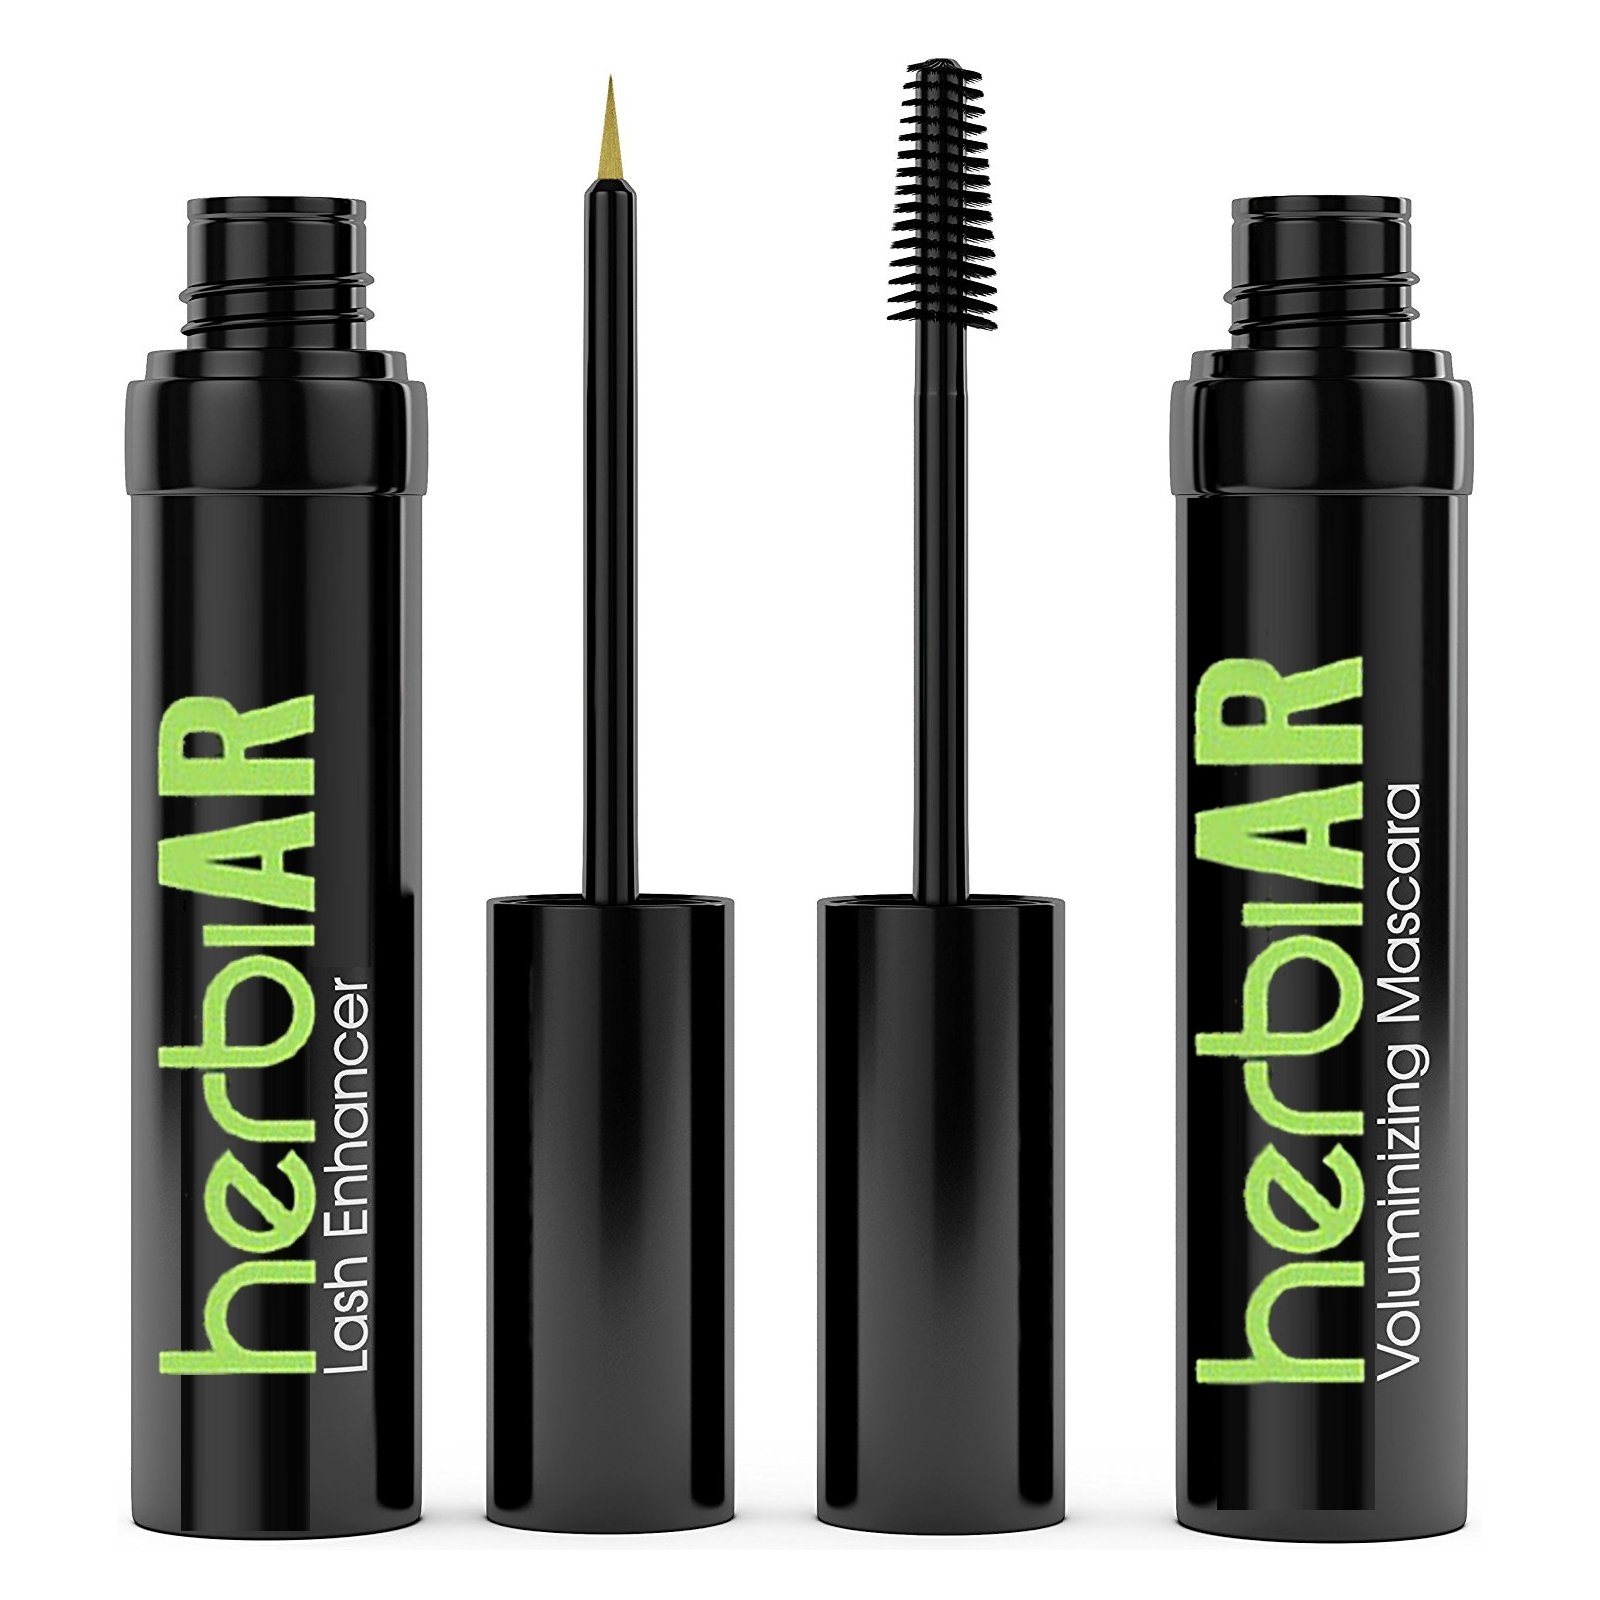 Advanced Lash Duo Growth Serum & Mascara COMBO Kit for Eyelash & Eyebrow - Grows Thicker, Longer, Fuller Lashes & Brows! Prevent Fall Out and Breakage with Advanced Strength Serum Enhancer herbiAR